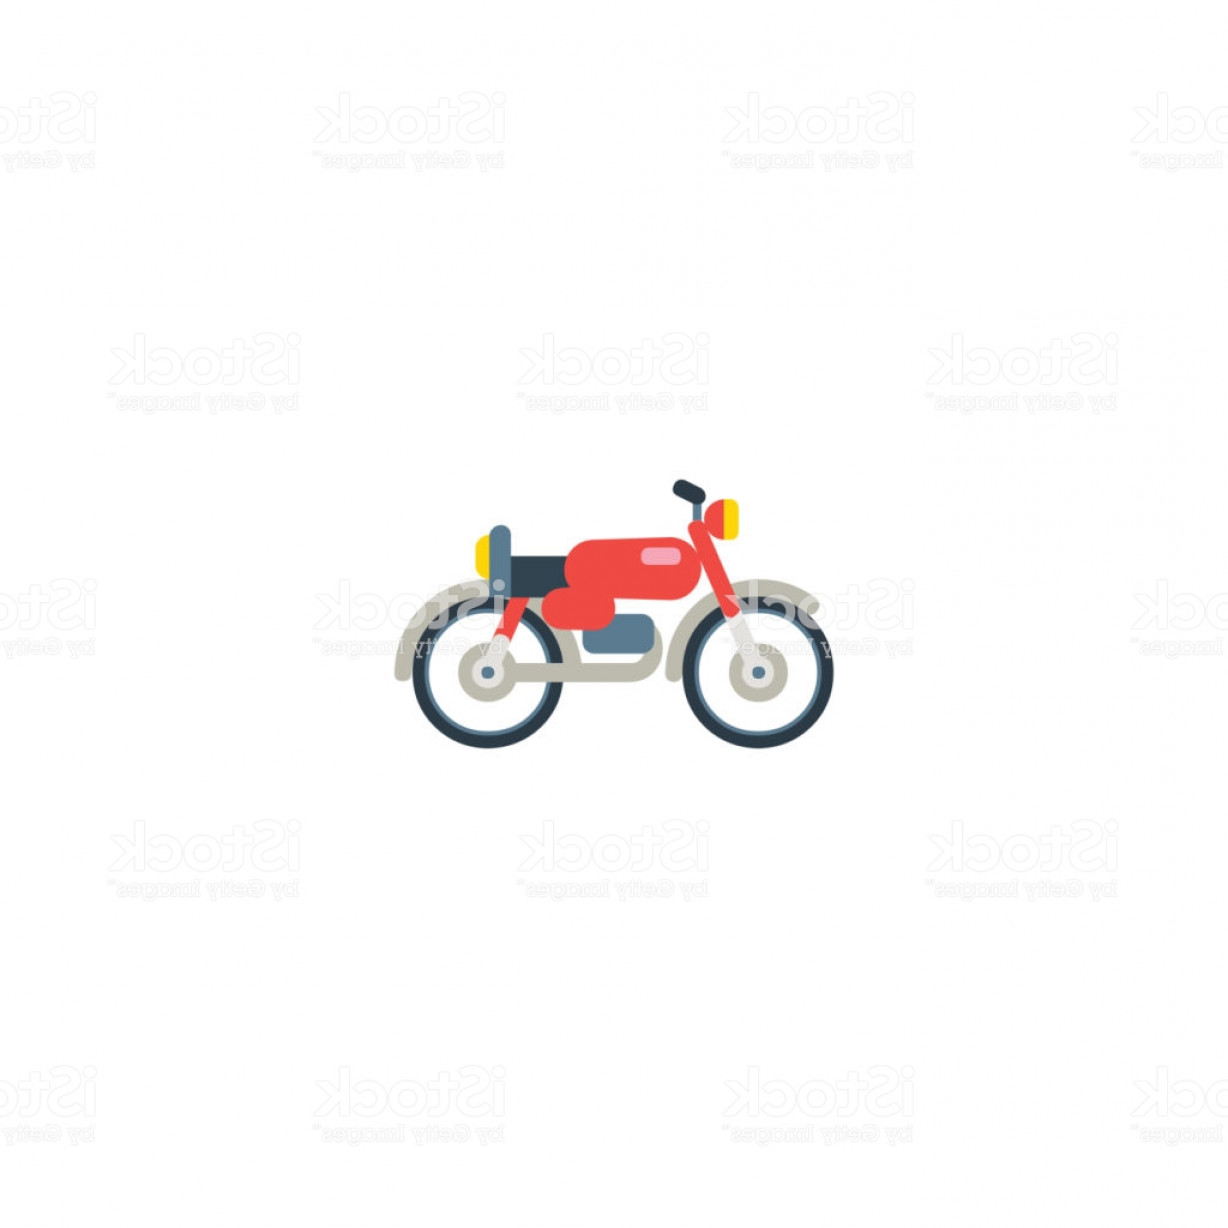 Flat Vector Motorcycle: Motorcycle Flat Vector Icon Isolated Motor Bike Illustration Symbol Vector Gm